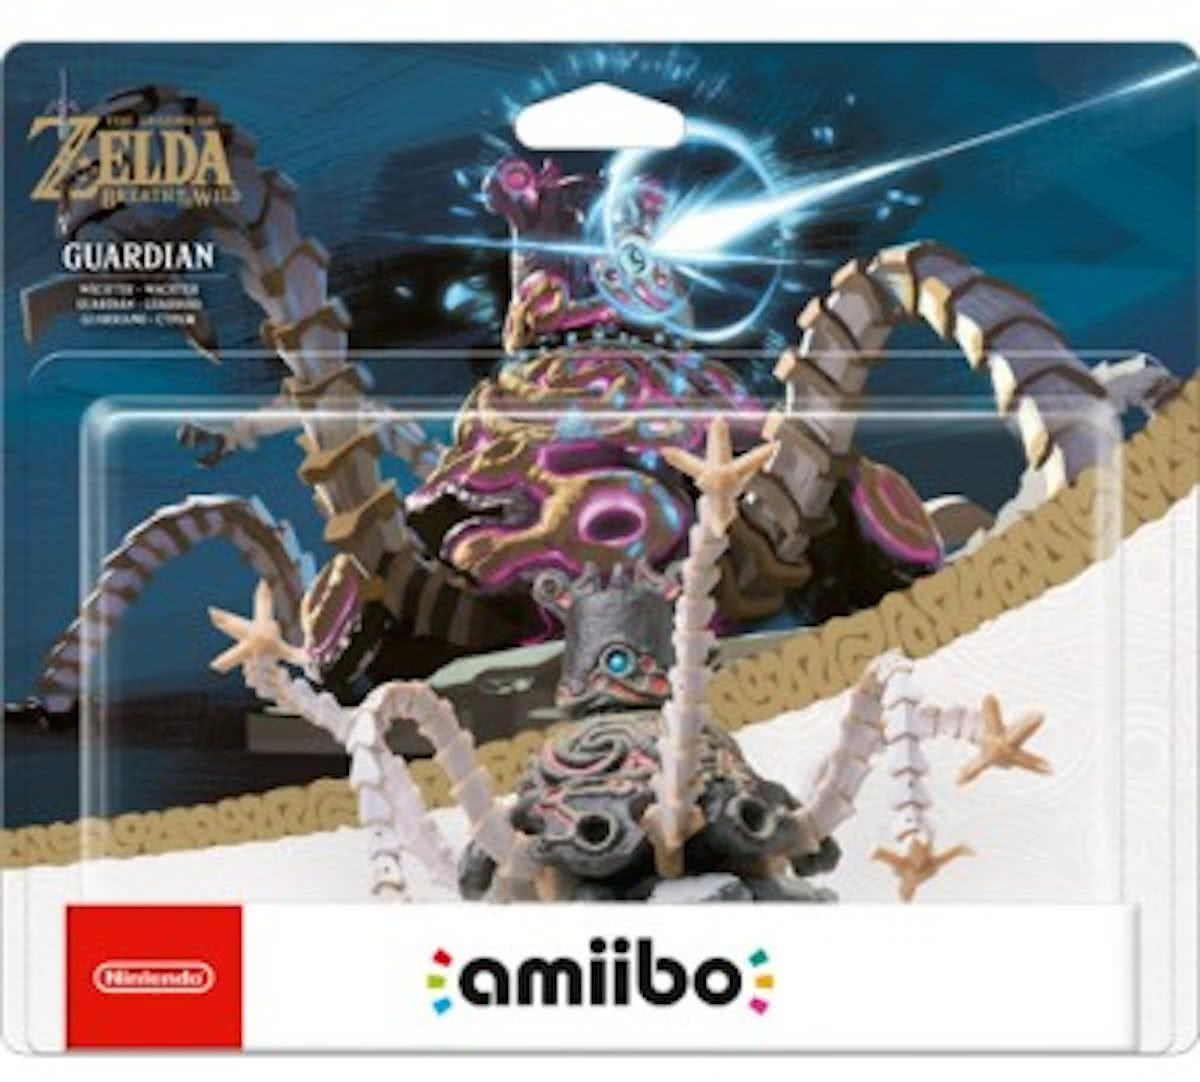 amiibo Legend of Zelda: Breath of the Wild Collection - Guardian - 3DS + Wii U + Switch